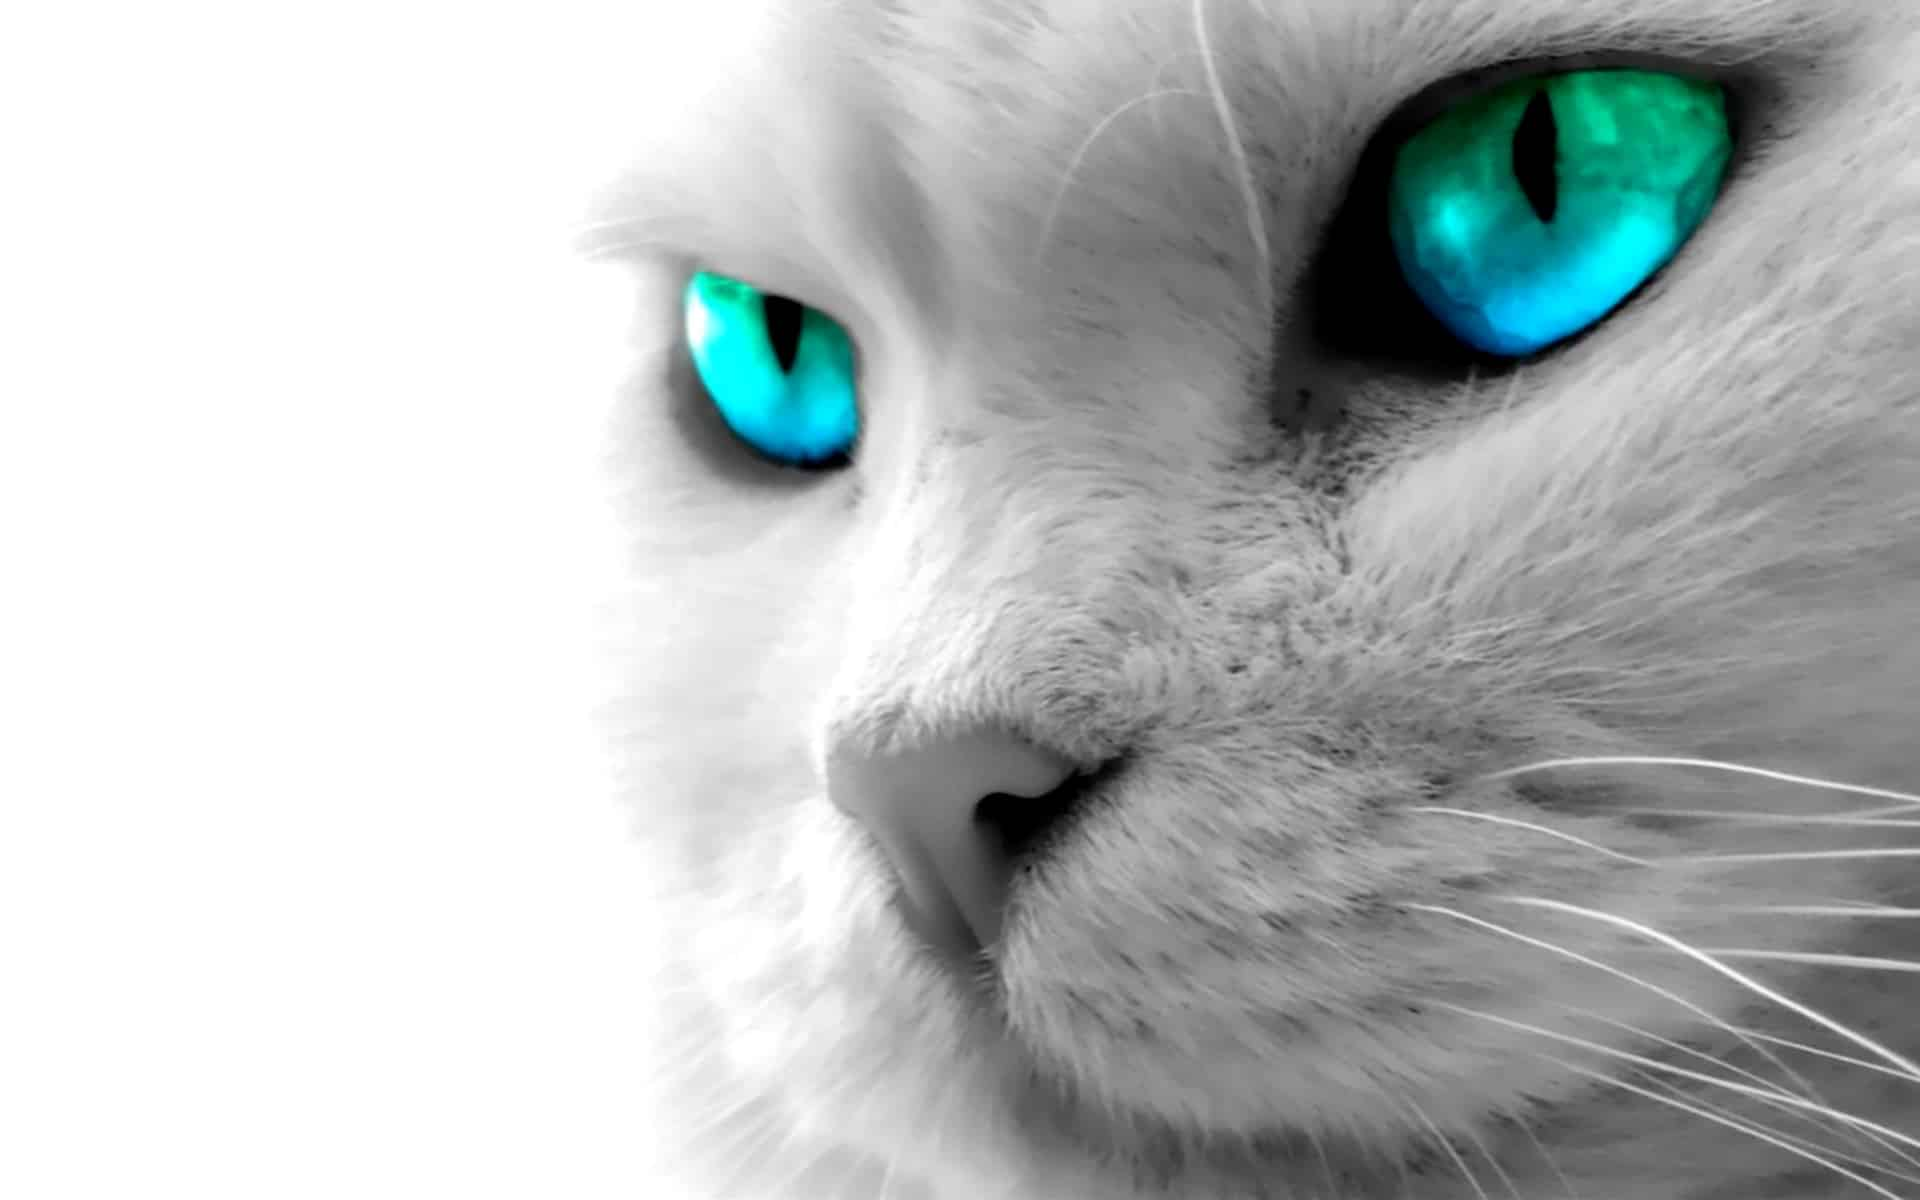 cool-animal-full-hd-wallpaper-b9d0ck